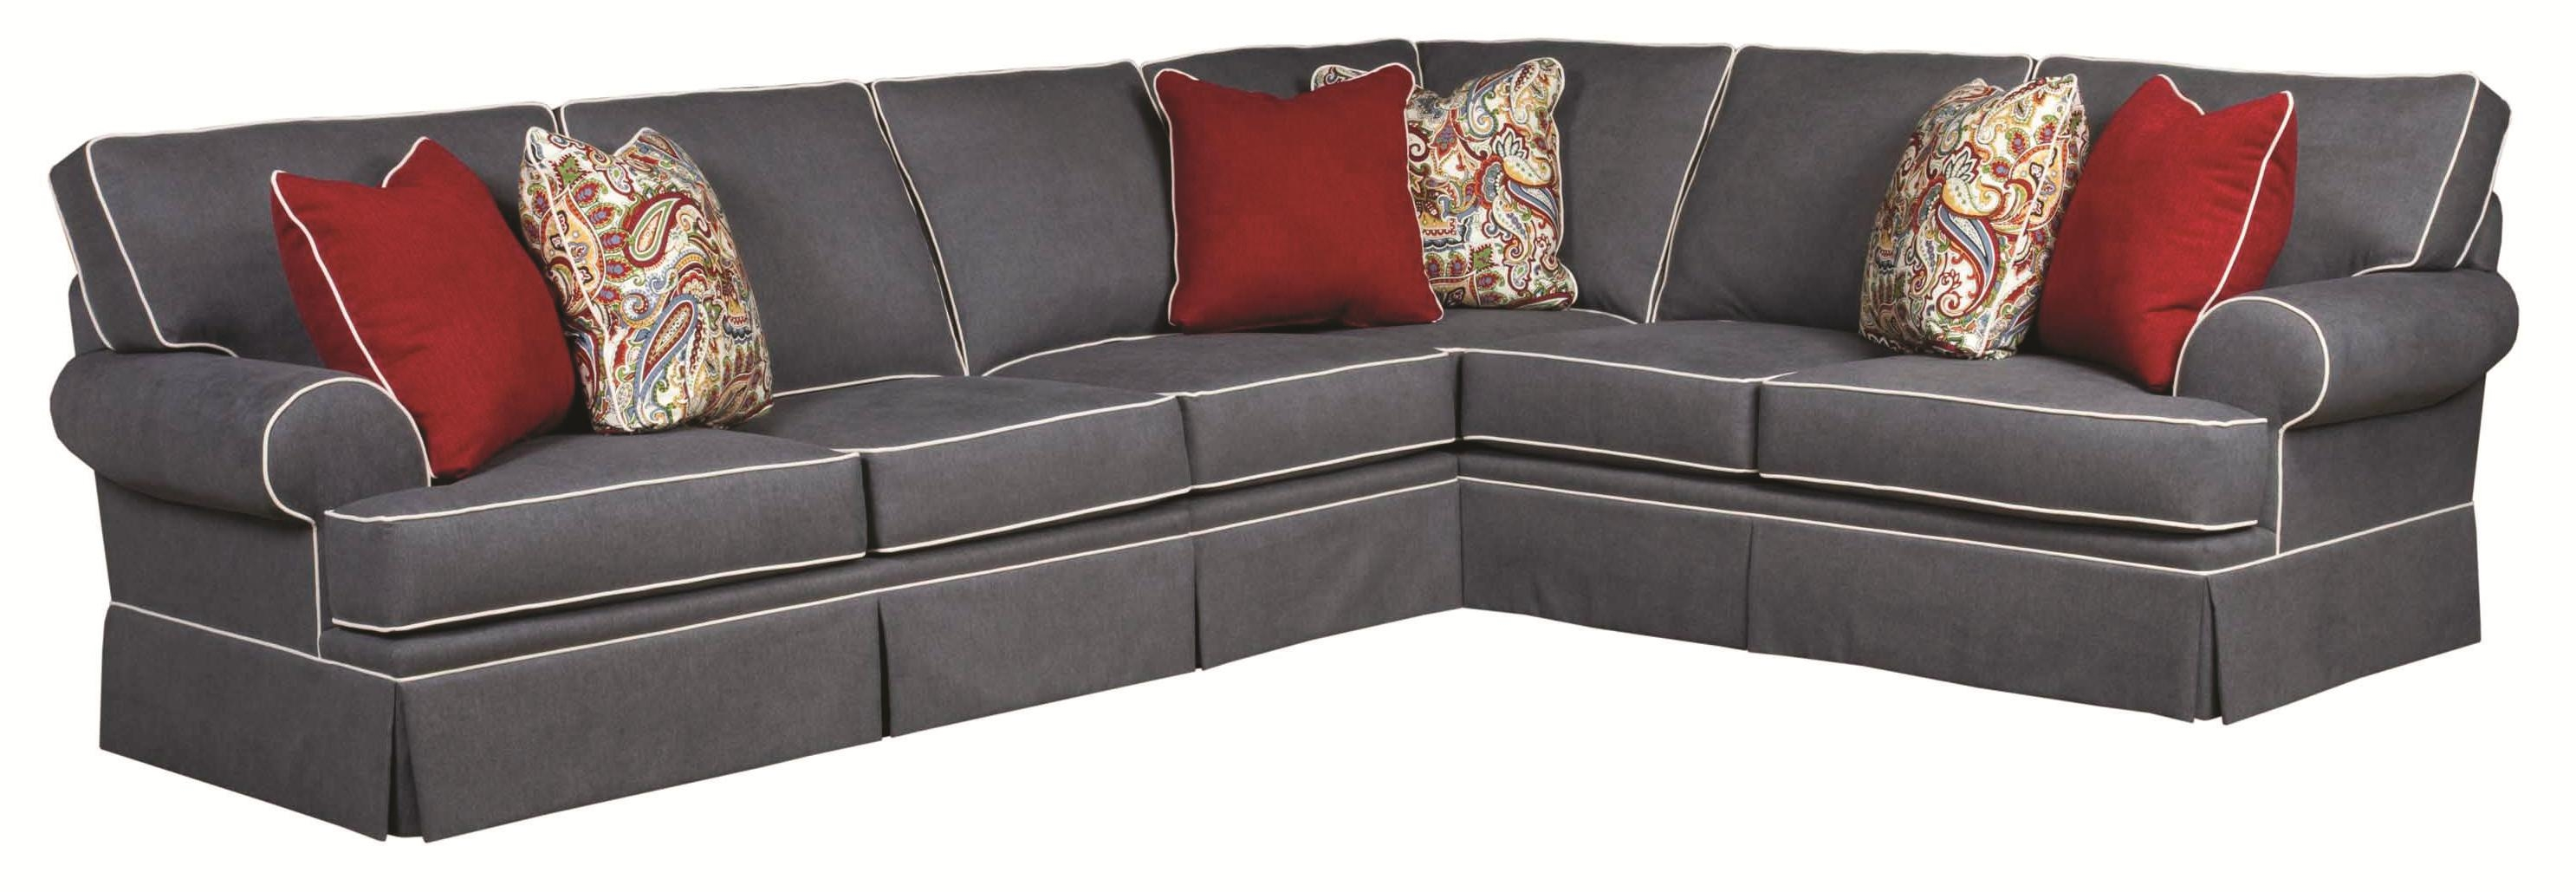 Broyhill Furniture Emily Traditional 3 Piece Sectional Sofa With With Regard To Broyhill Sectional Sofas (#1 of 12)